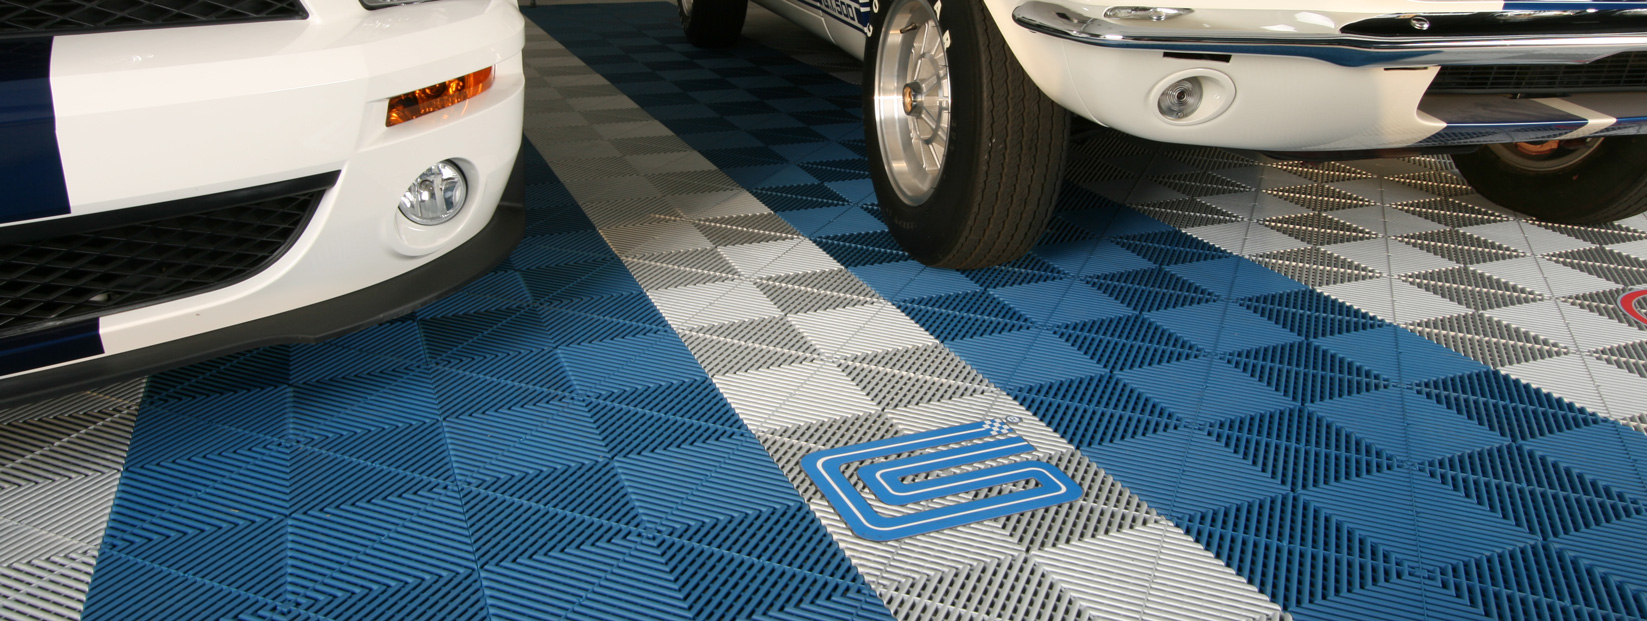 Garage Floor Coating Tucson Cost Garage Flooring Colorado Springs Rudolph Garage Storage Solutions